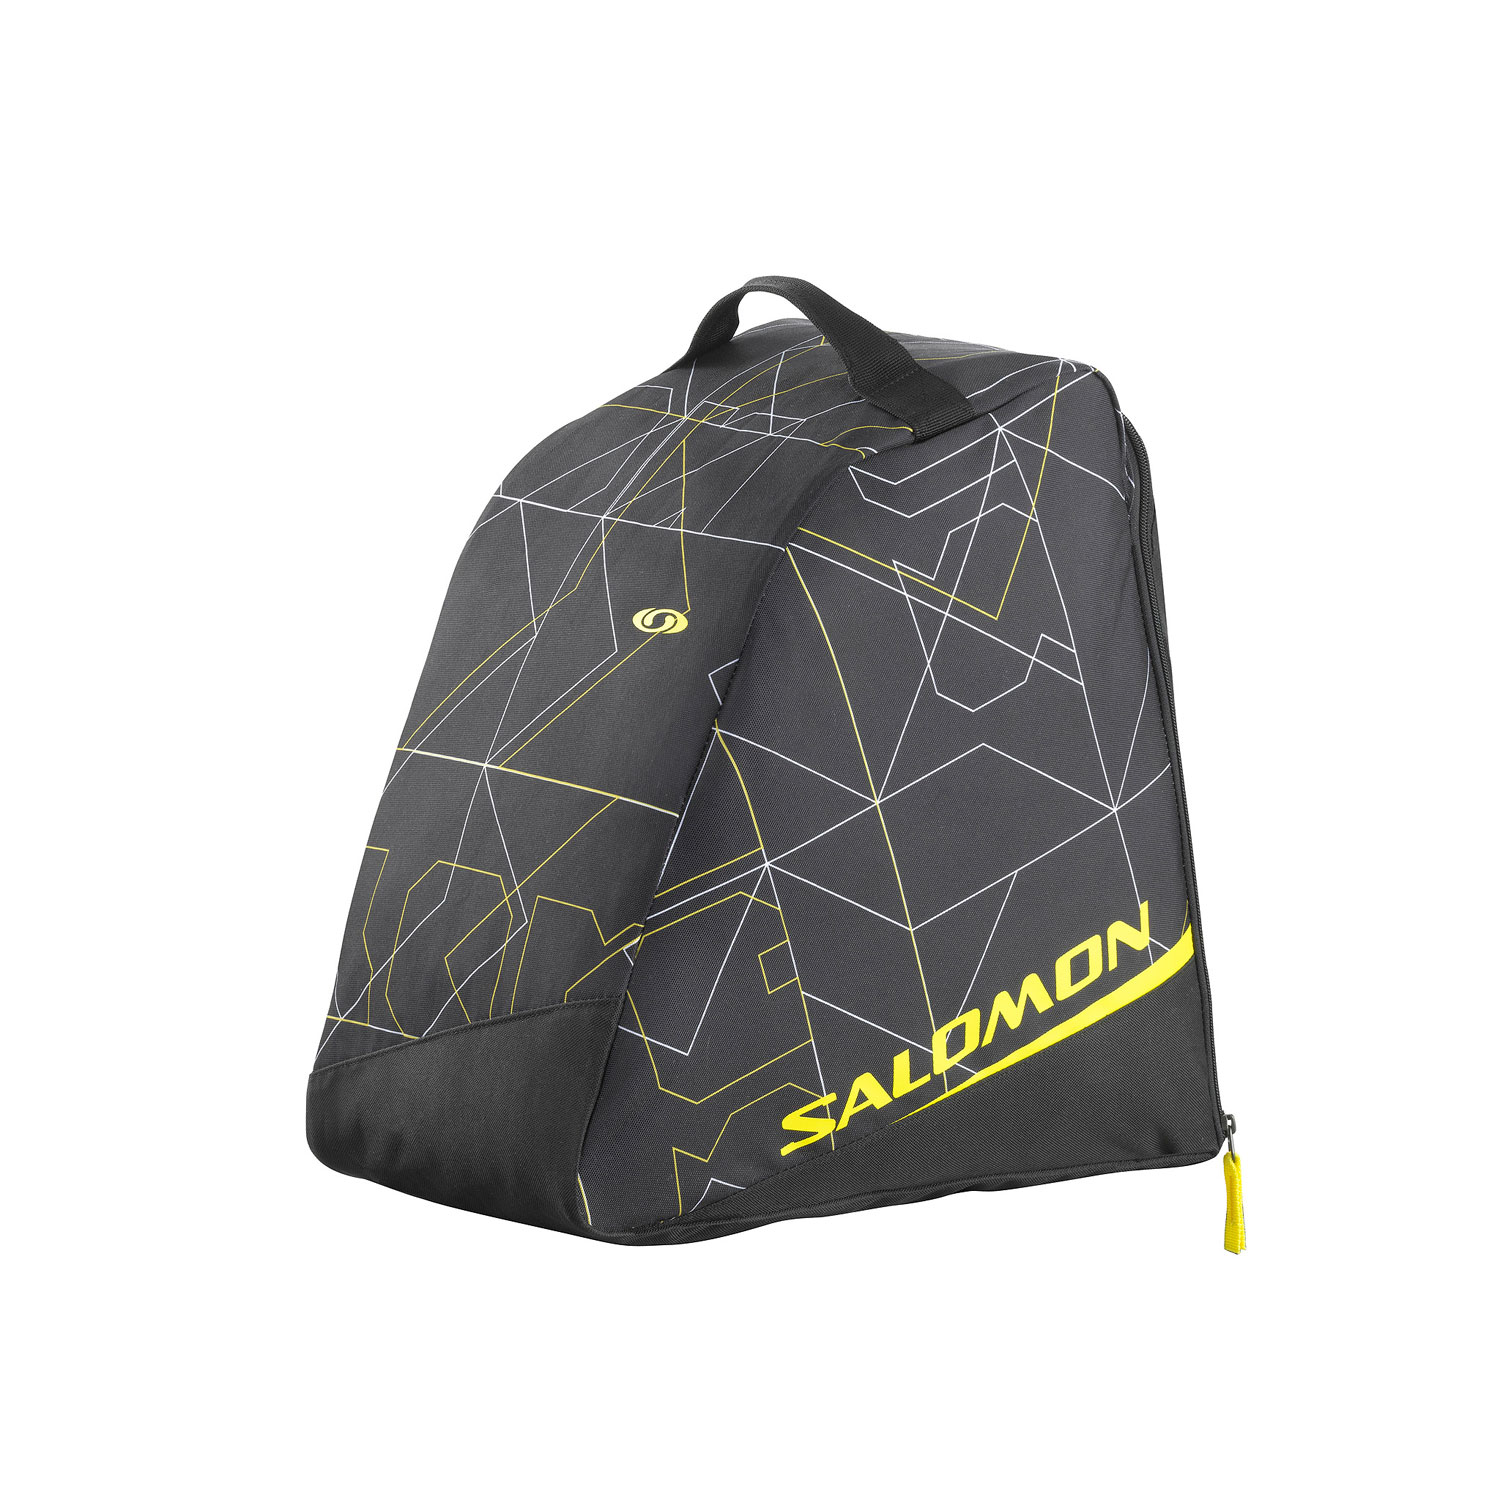 Camp and Hike Simple, light weight boot bag with easy to use storage space. great value.Key Features of the Salomon Boot Bag: Top Handle Waterproof Bottom Large Opening Boots Compartment 200 G / 0.4Lb 7Oz 32 L / 1953 Ci 39 X 23 X 38 Cm 600D Pes Tpe Pvc Free - $25.00